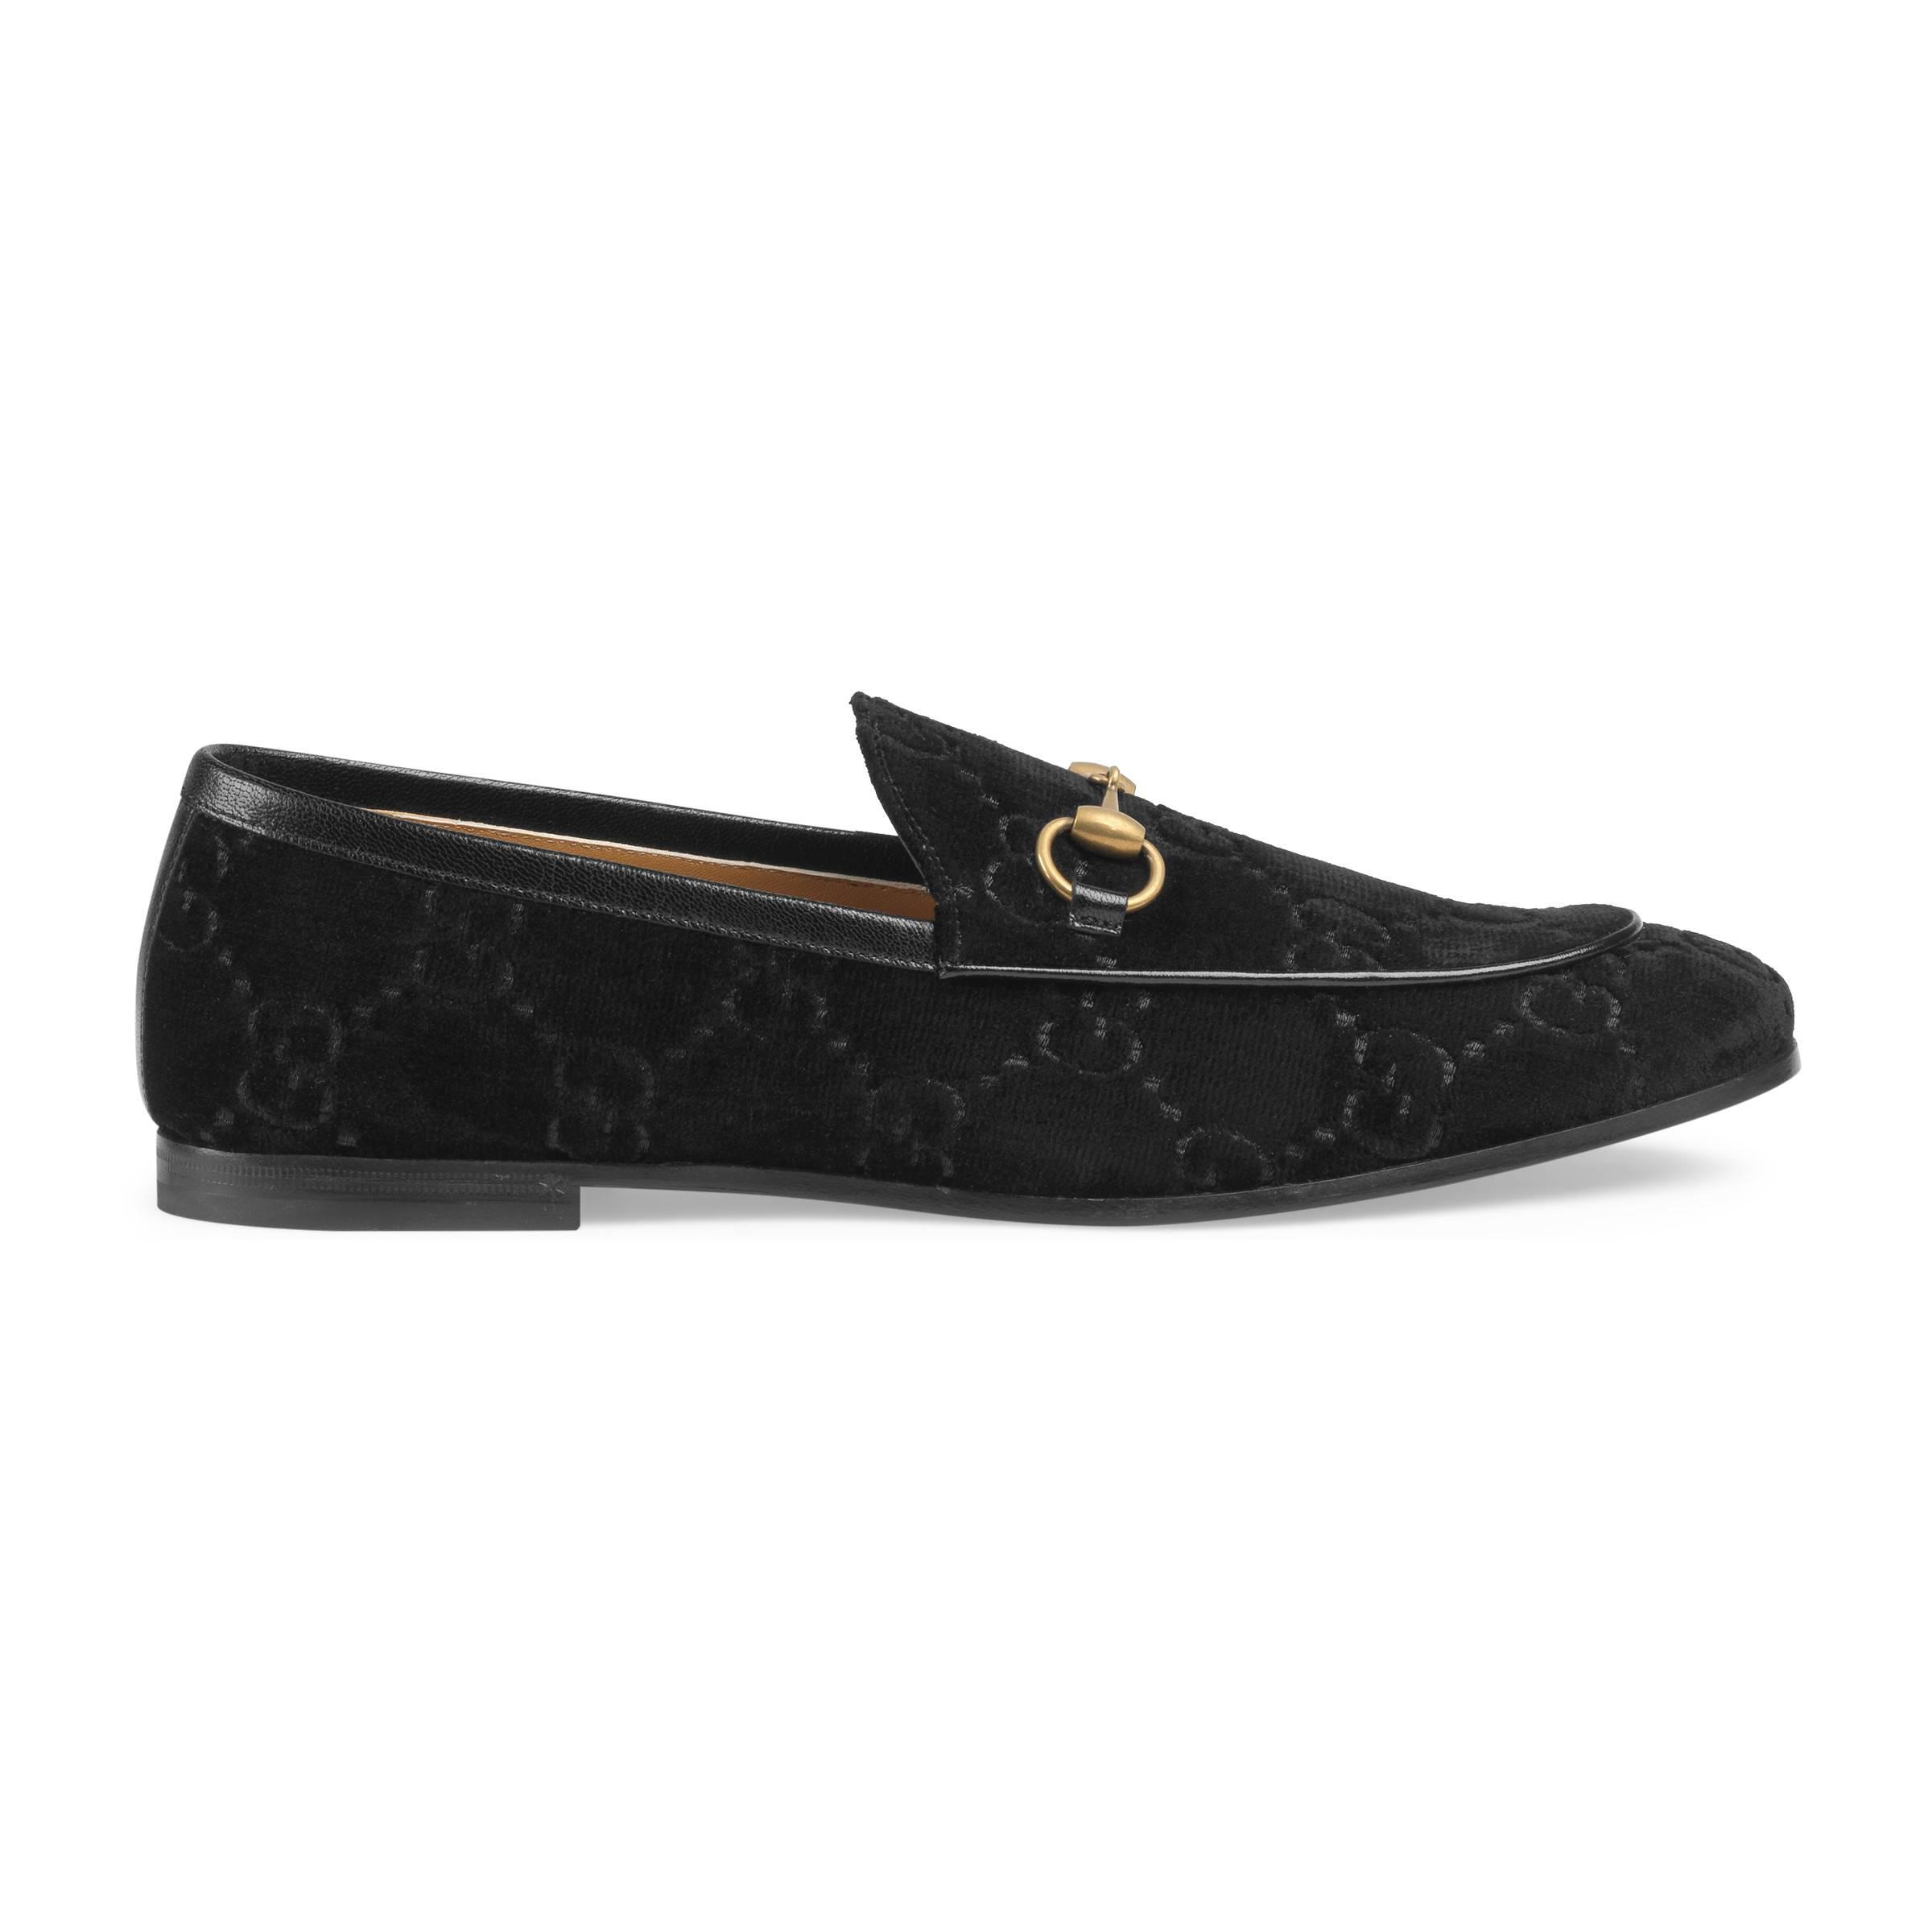 7fb0591ec0e Gucci Jordaan GG Velvet Loafer in Black for Men - Lyst